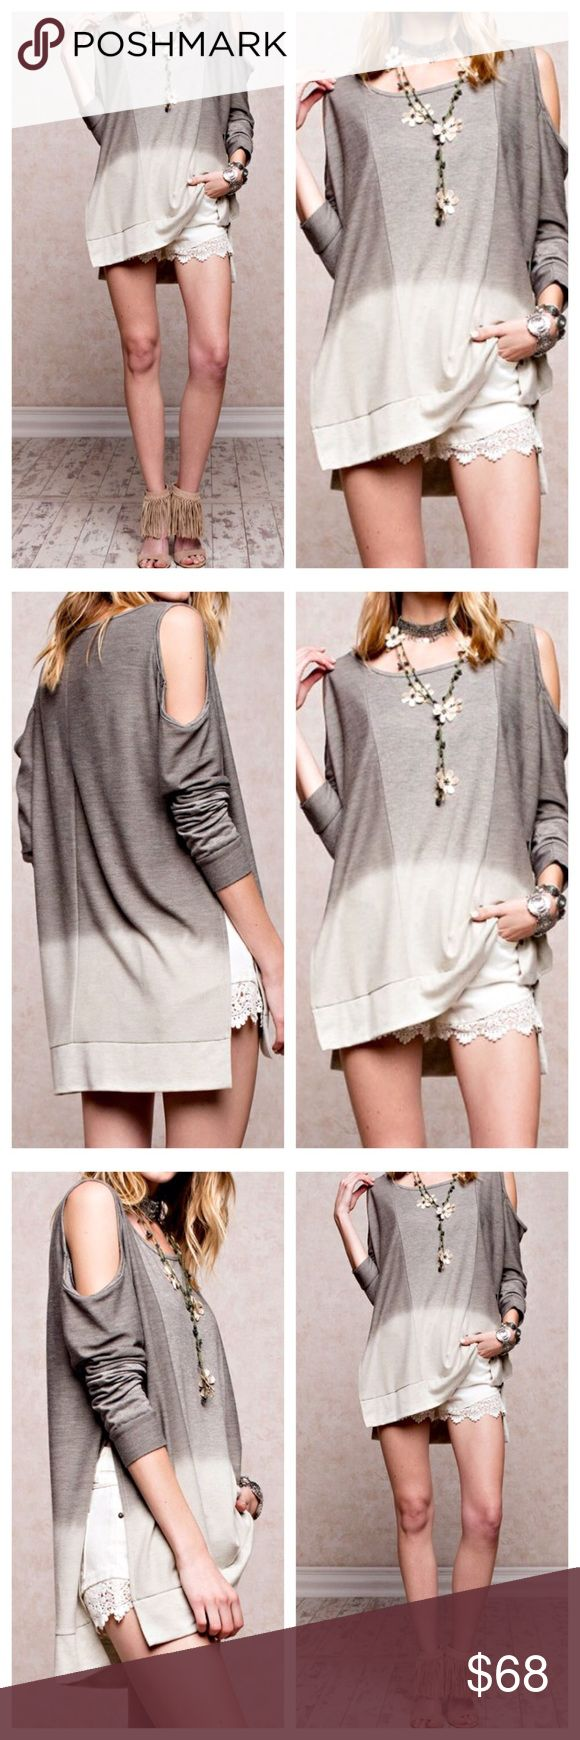 Cold Shoulder Ombre Cape Dip Dye T ShirtDress NWOT Super SOFT! Cozy Lightweight Pullover Cold Shoulder, Dip Dyed, Boxy Fit Simple French Terry Fabric Side Vents MADE IN THE USA! Color is Oatmeal/Olive Grey Shop our Facebook Shop! https://www.facebook.com/BohoLocoFashionBoutique/ Shop us on Pinterest! https://www.pinterest.com/BohoLocoFashion Shop us on Twitter! https://twitter.com/FashionBohoLoco Follow us on Instagram! https://instagram.com/FashionBohoLoco Shirt Dress Crochet Striped…